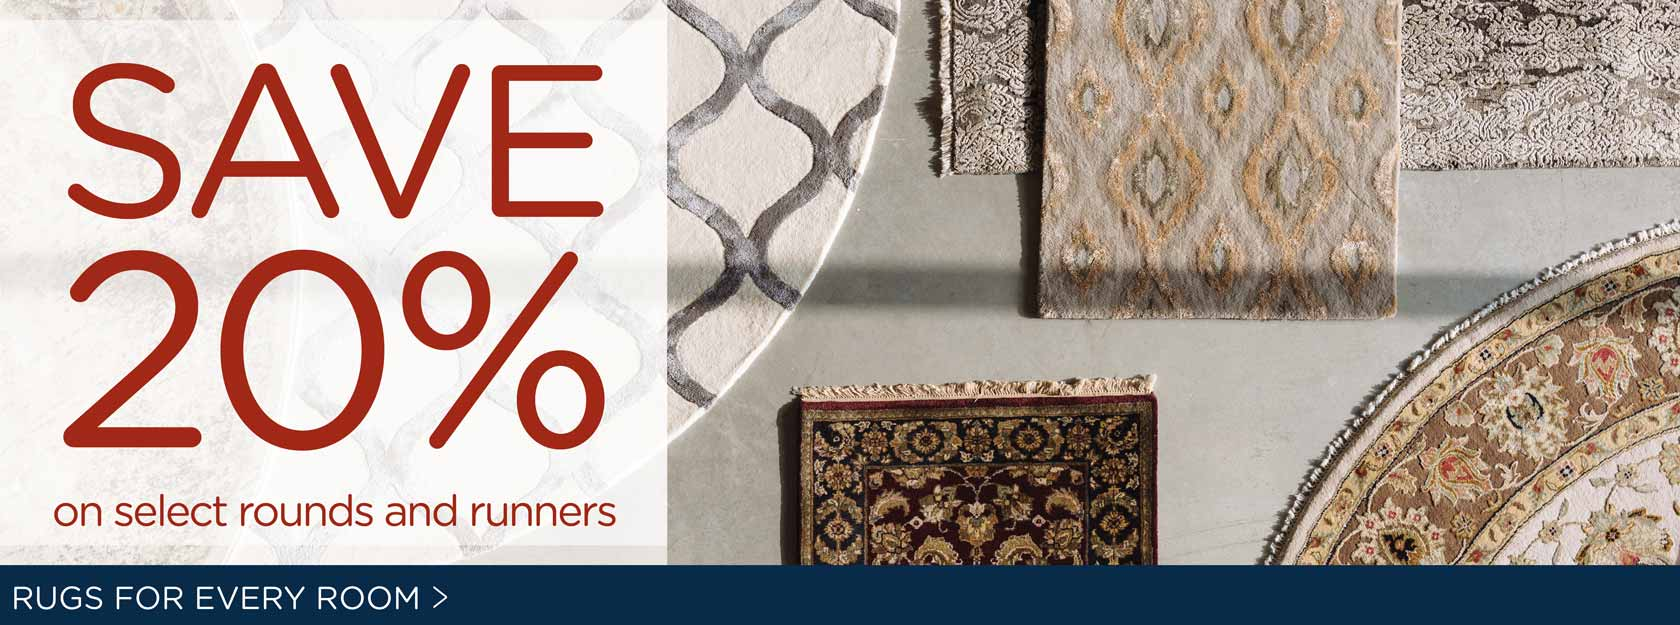 Save 20% on LB Runners/Round Rugs